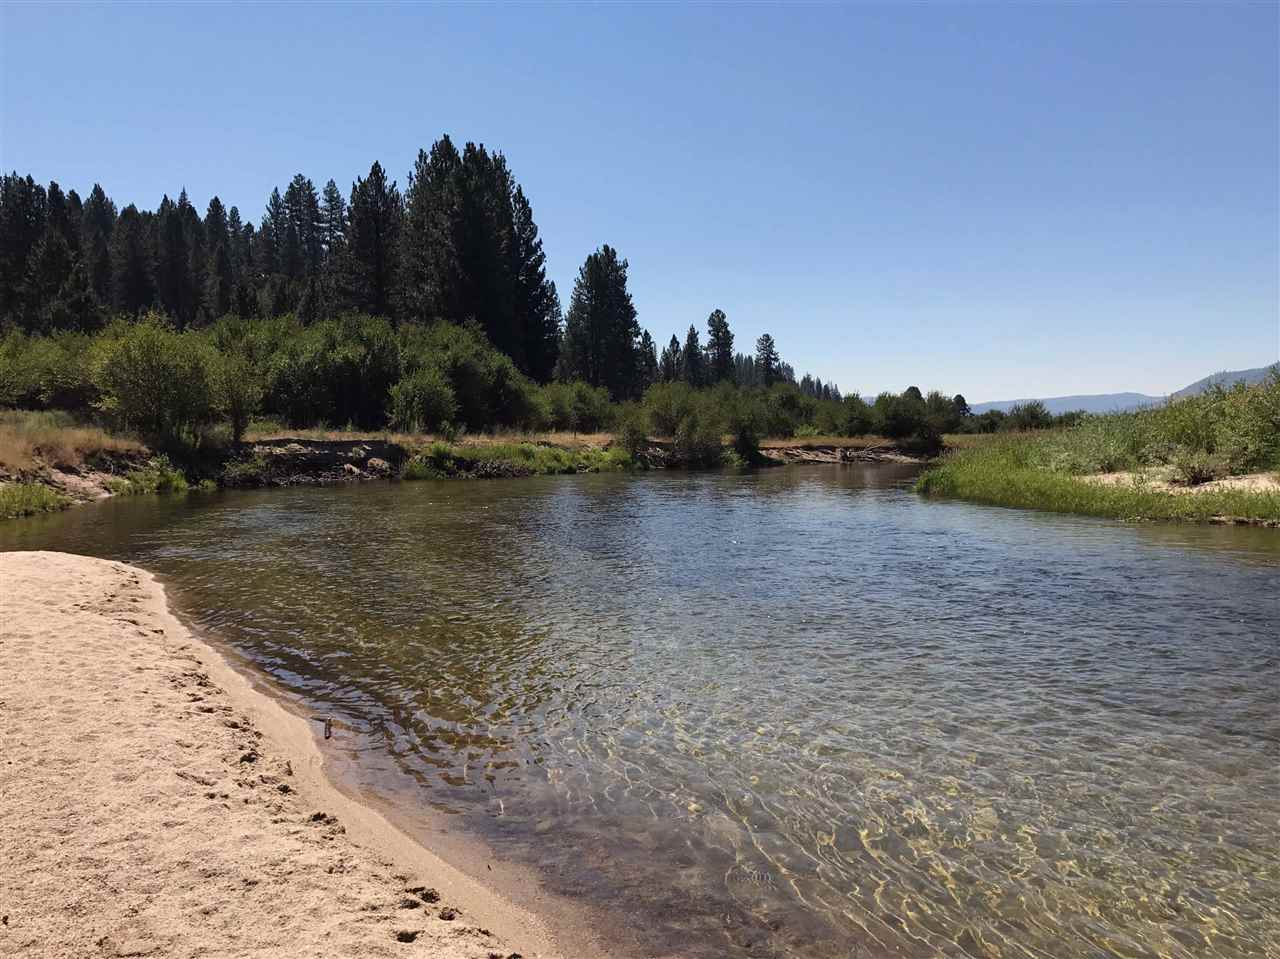 Recreational Property for Sale at Pine Bar Ranch on Windy River Road Pine Bar Ranch on Windy River Road Garden Valley, Idaho 83622